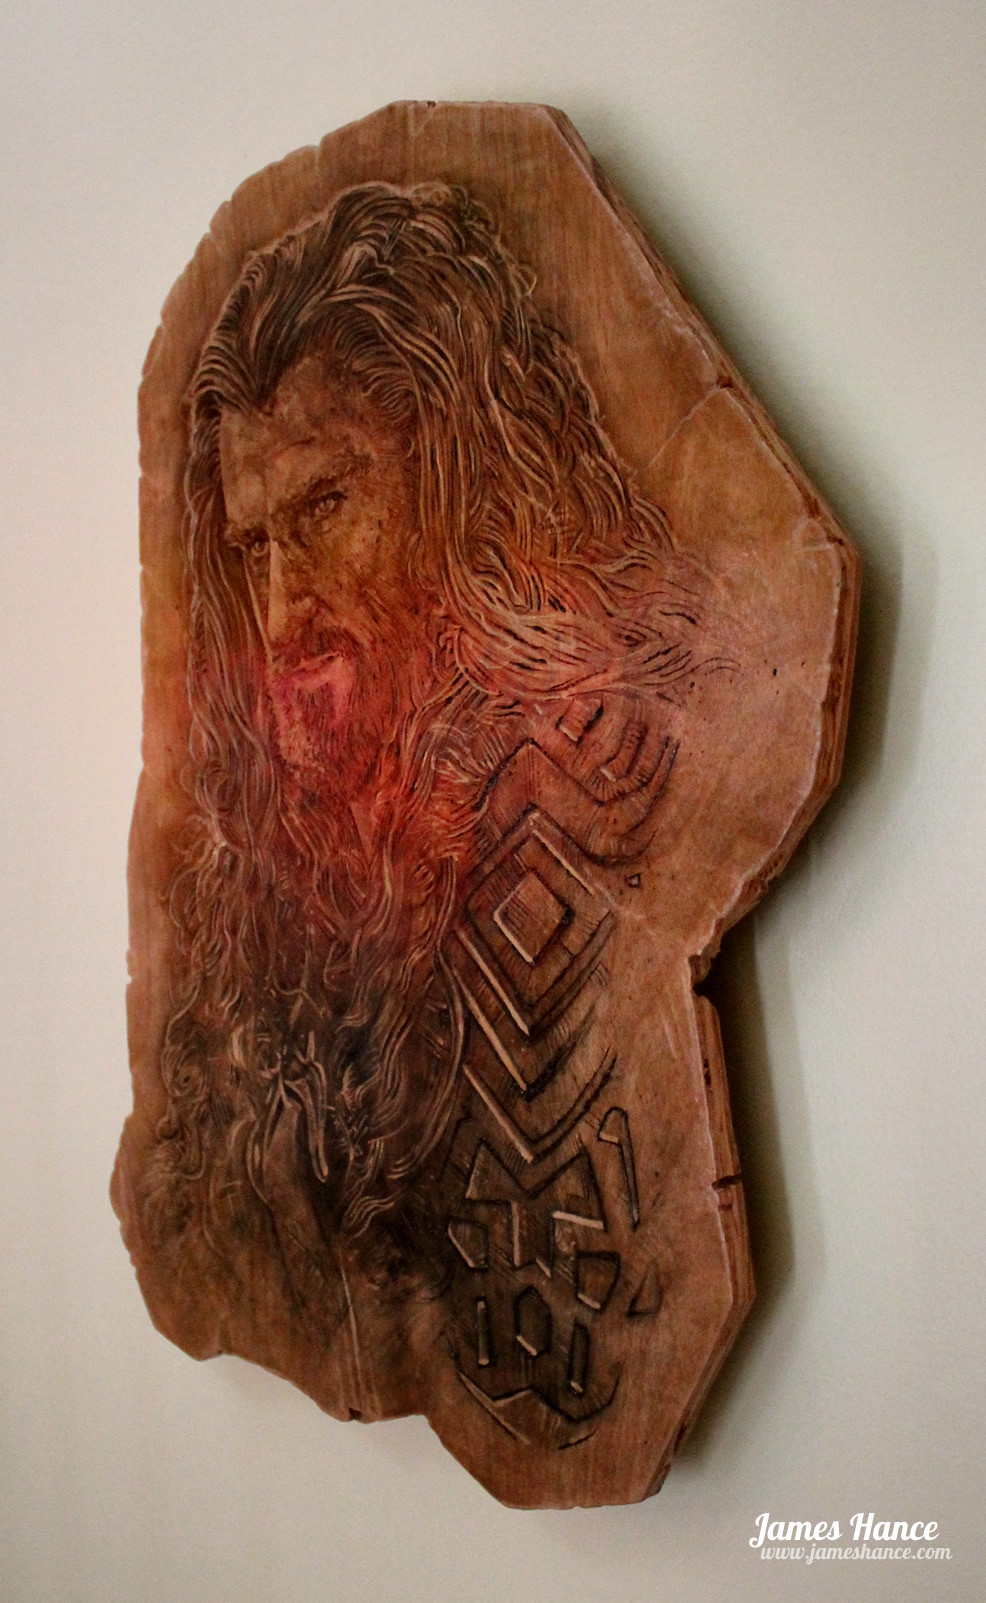 Thorin Oakenshield - Carved in oak